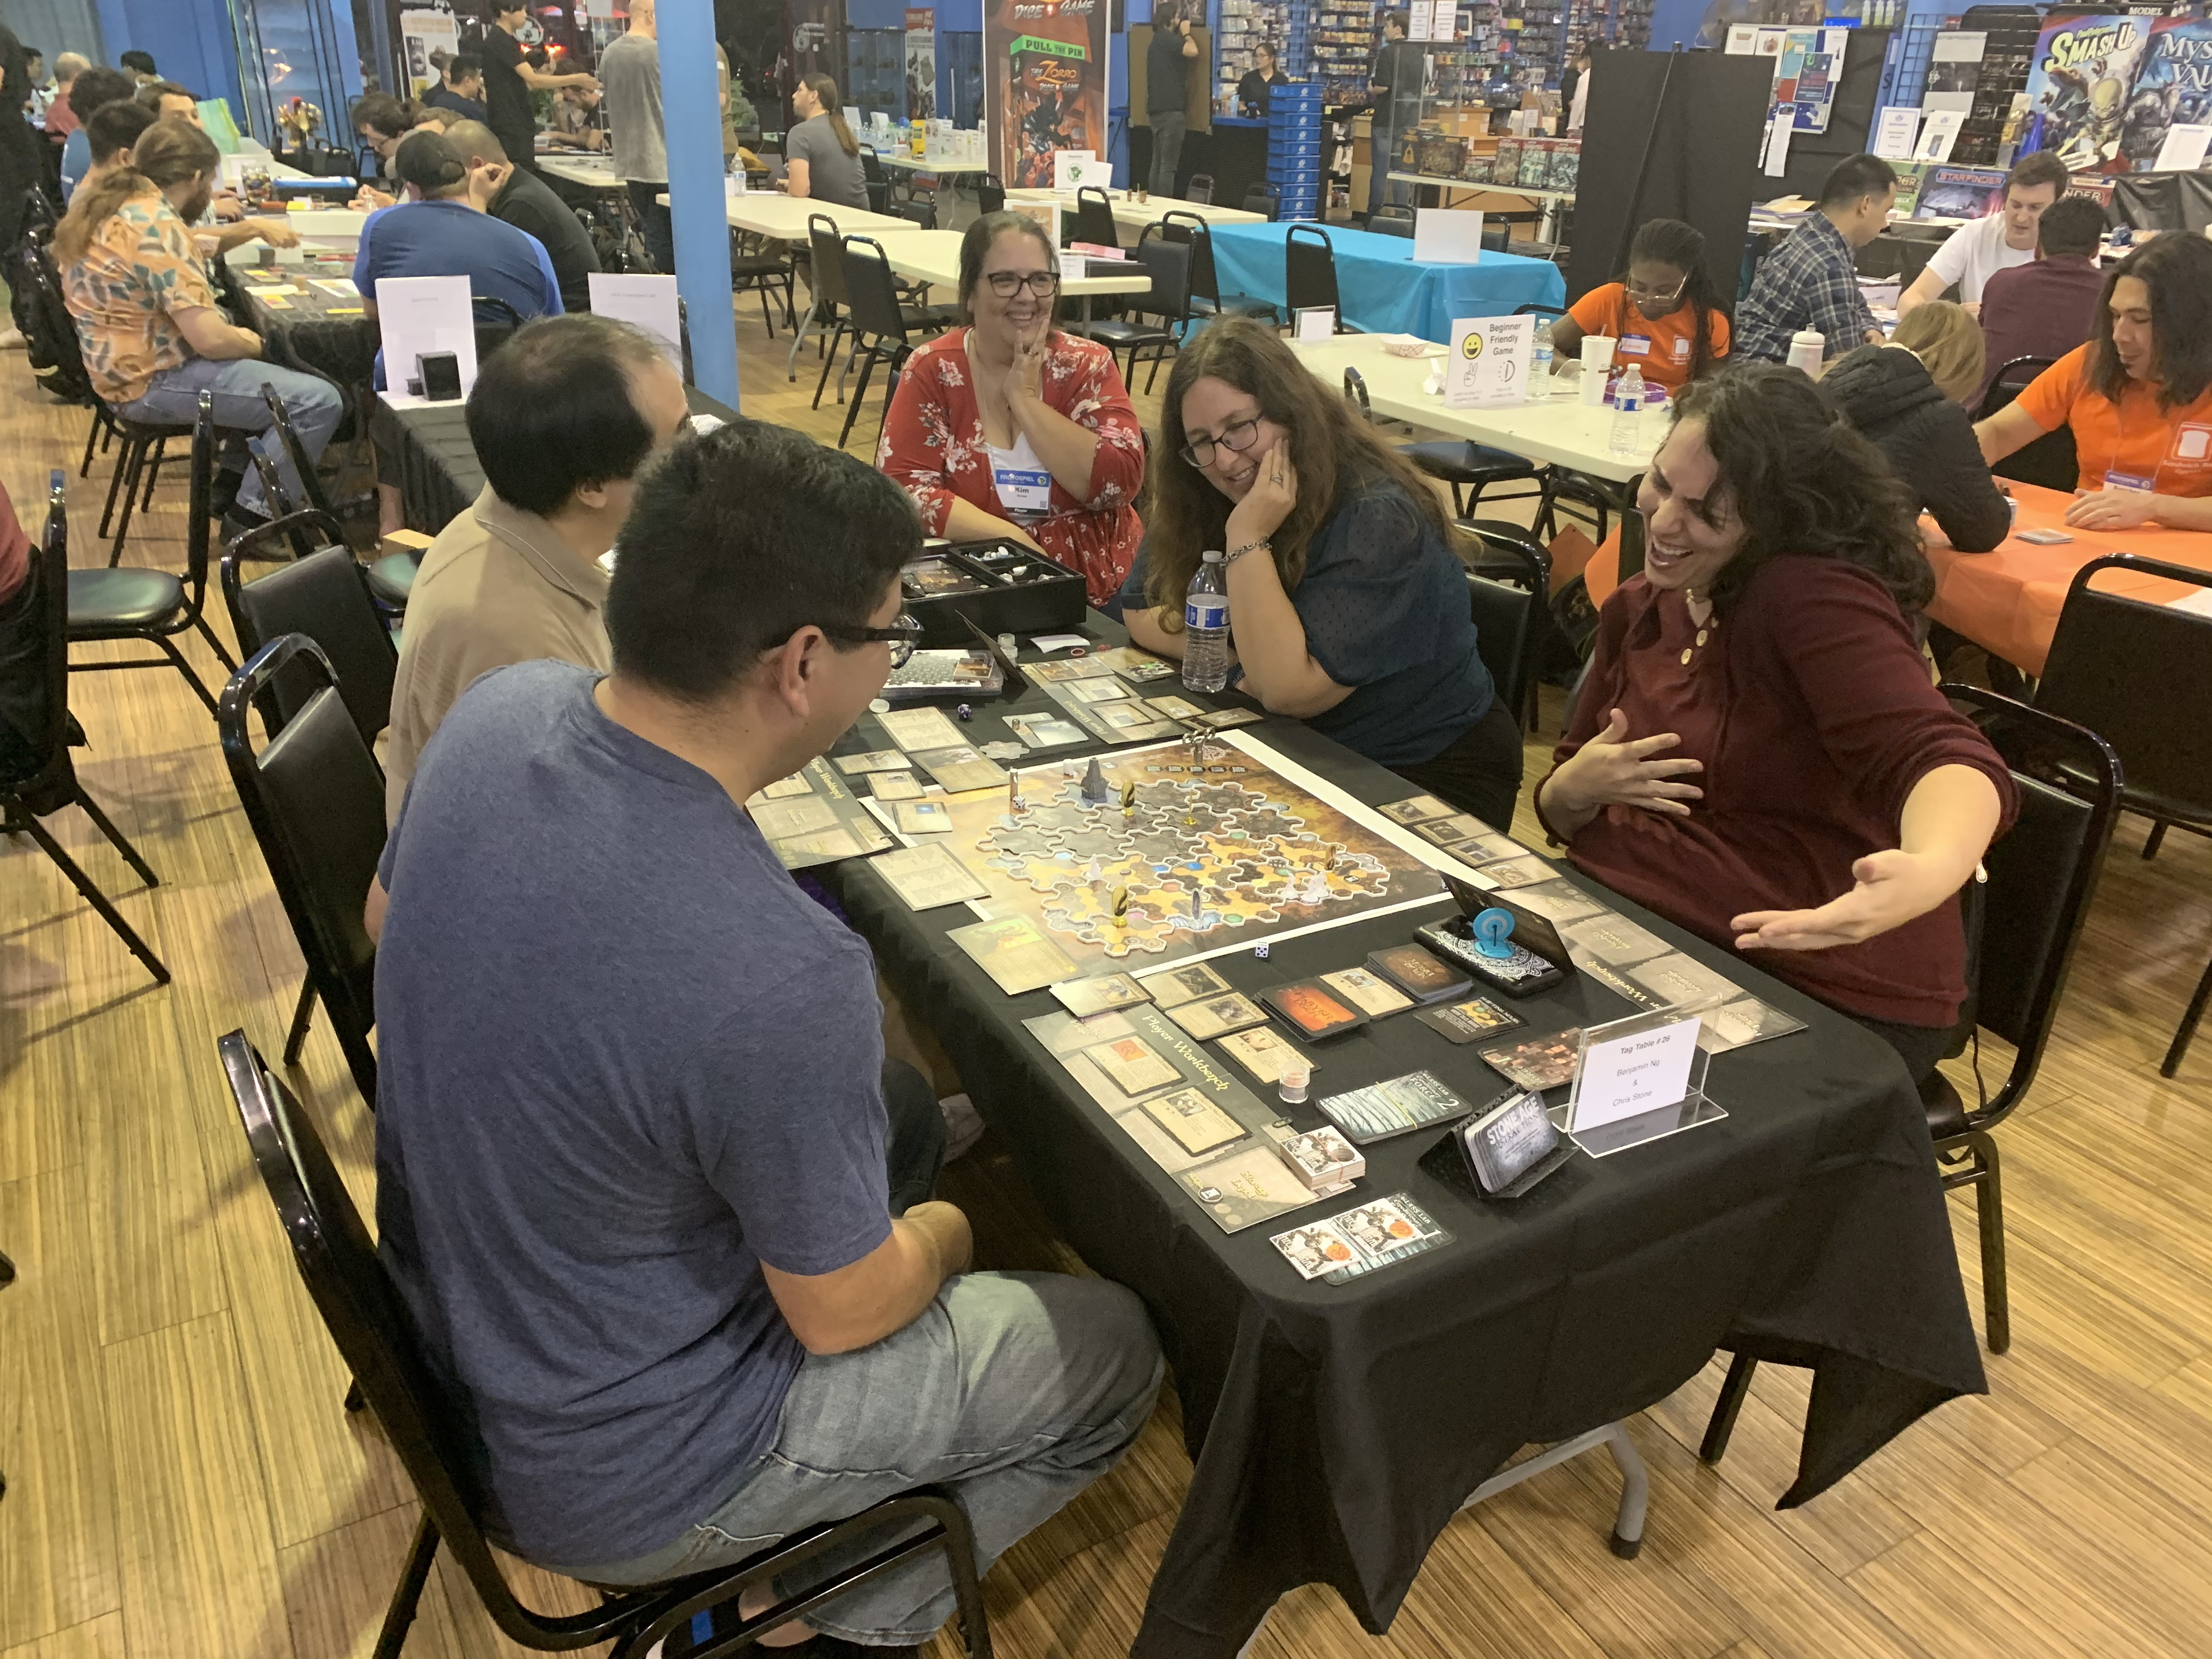 Playtesting at Protospiel, 2019